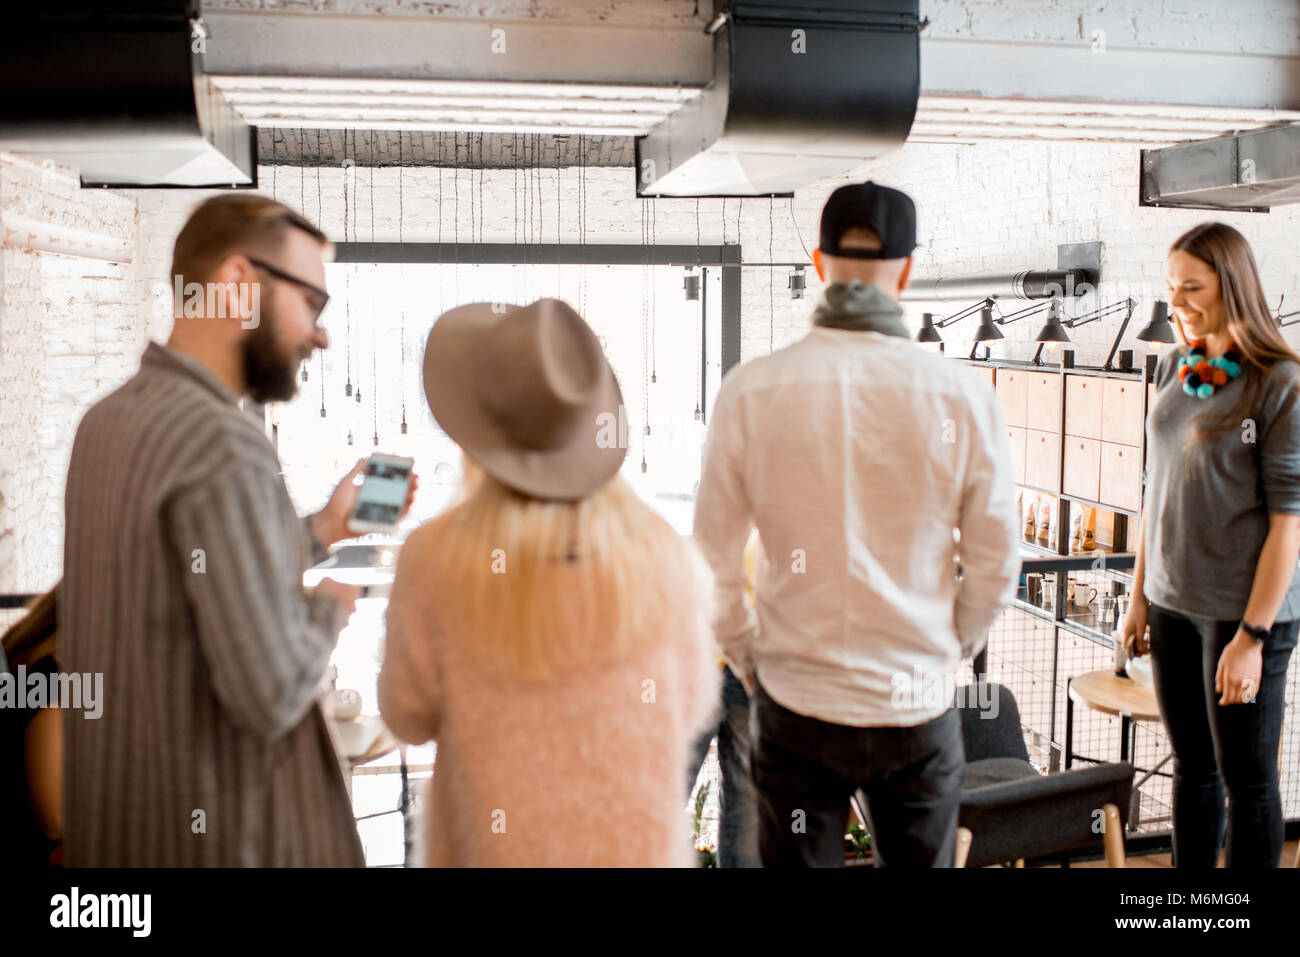 People talking indoors, no focus - Stock Image